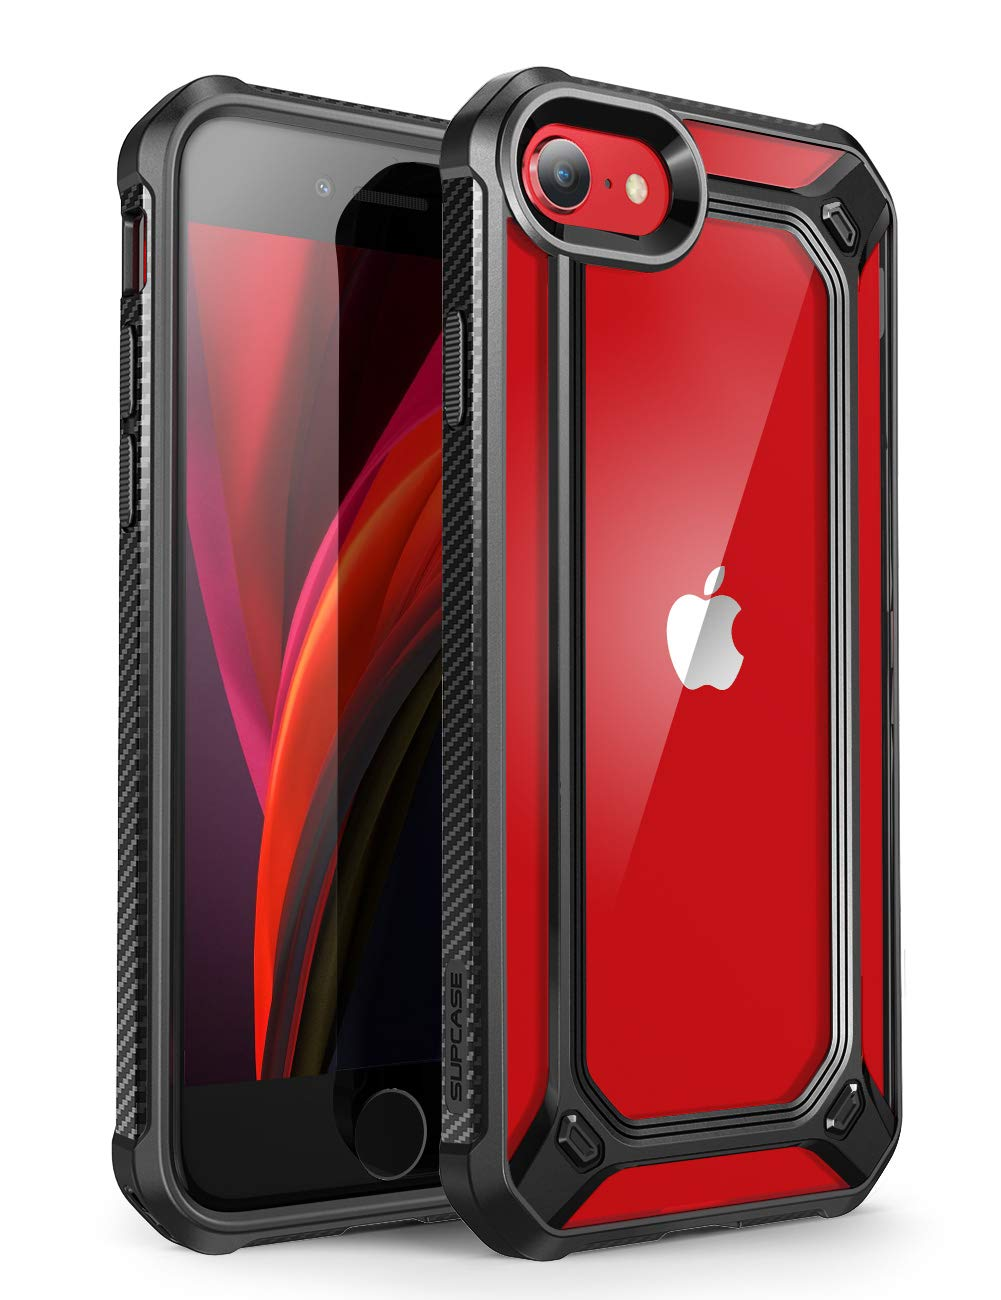 SupCase [Unicorn Beetle EXO Series] Case for iPhone SE 2nd Generation (2020), Premium Hybrid Protective Clear Bumper Case for iPhone SE /7/8(Black)